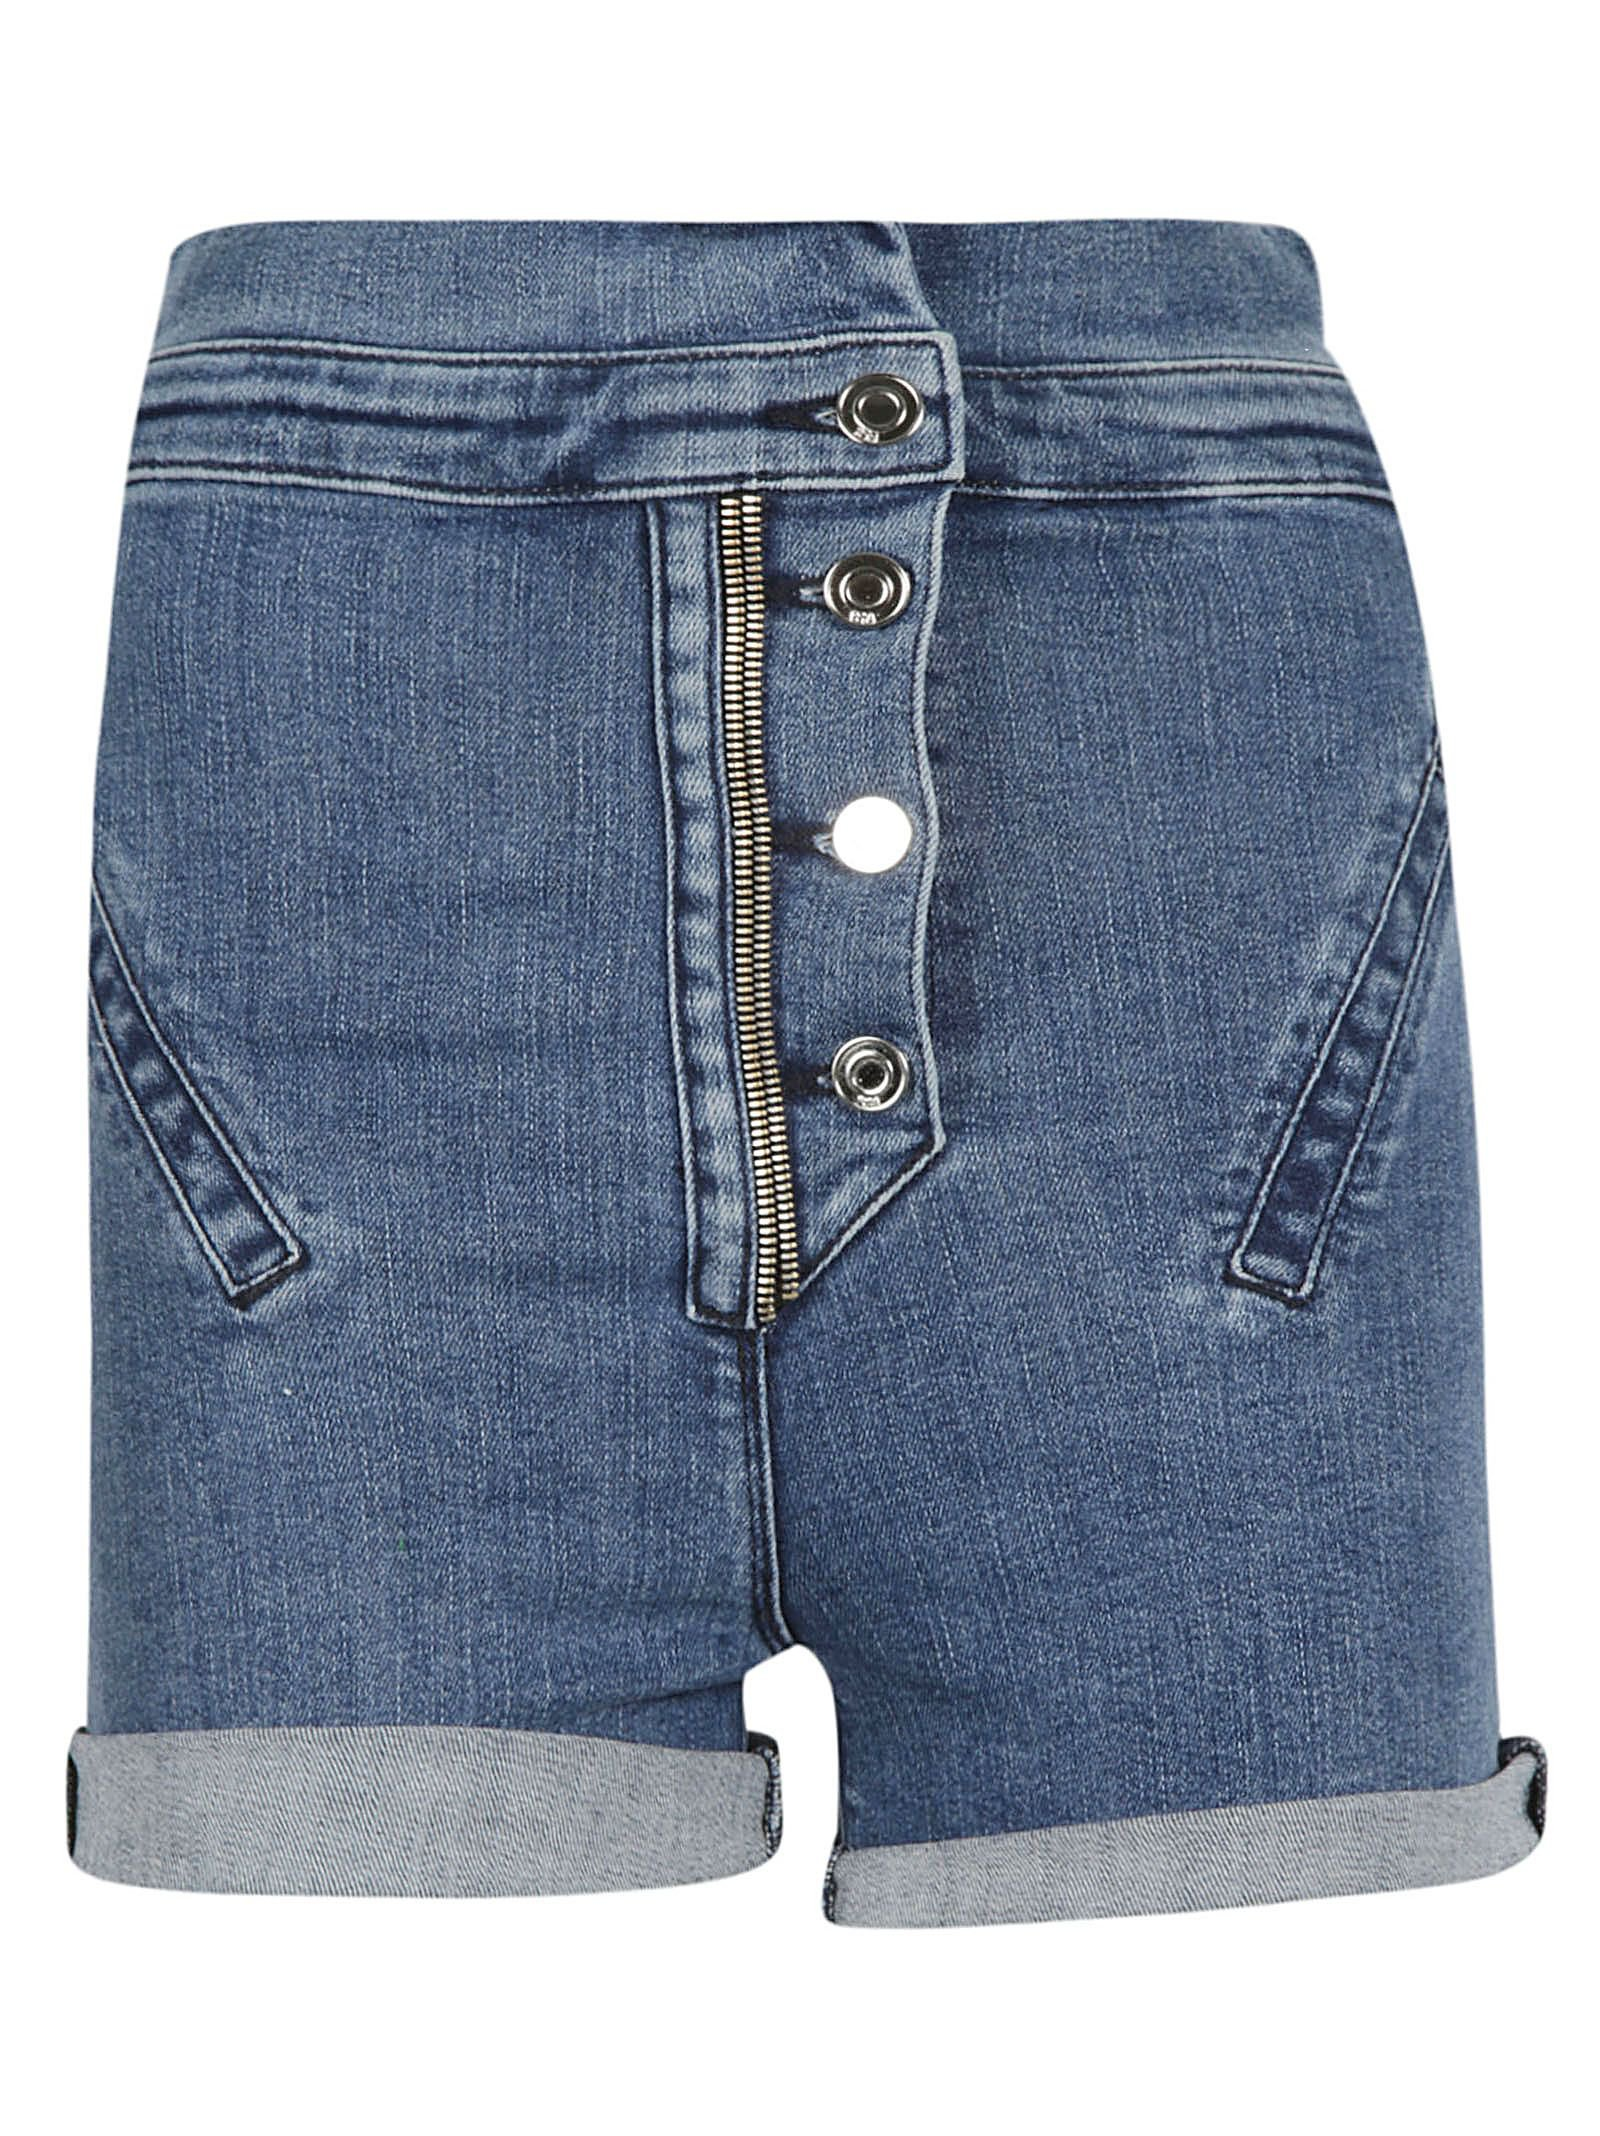 RTA High Waist Denim Shorts